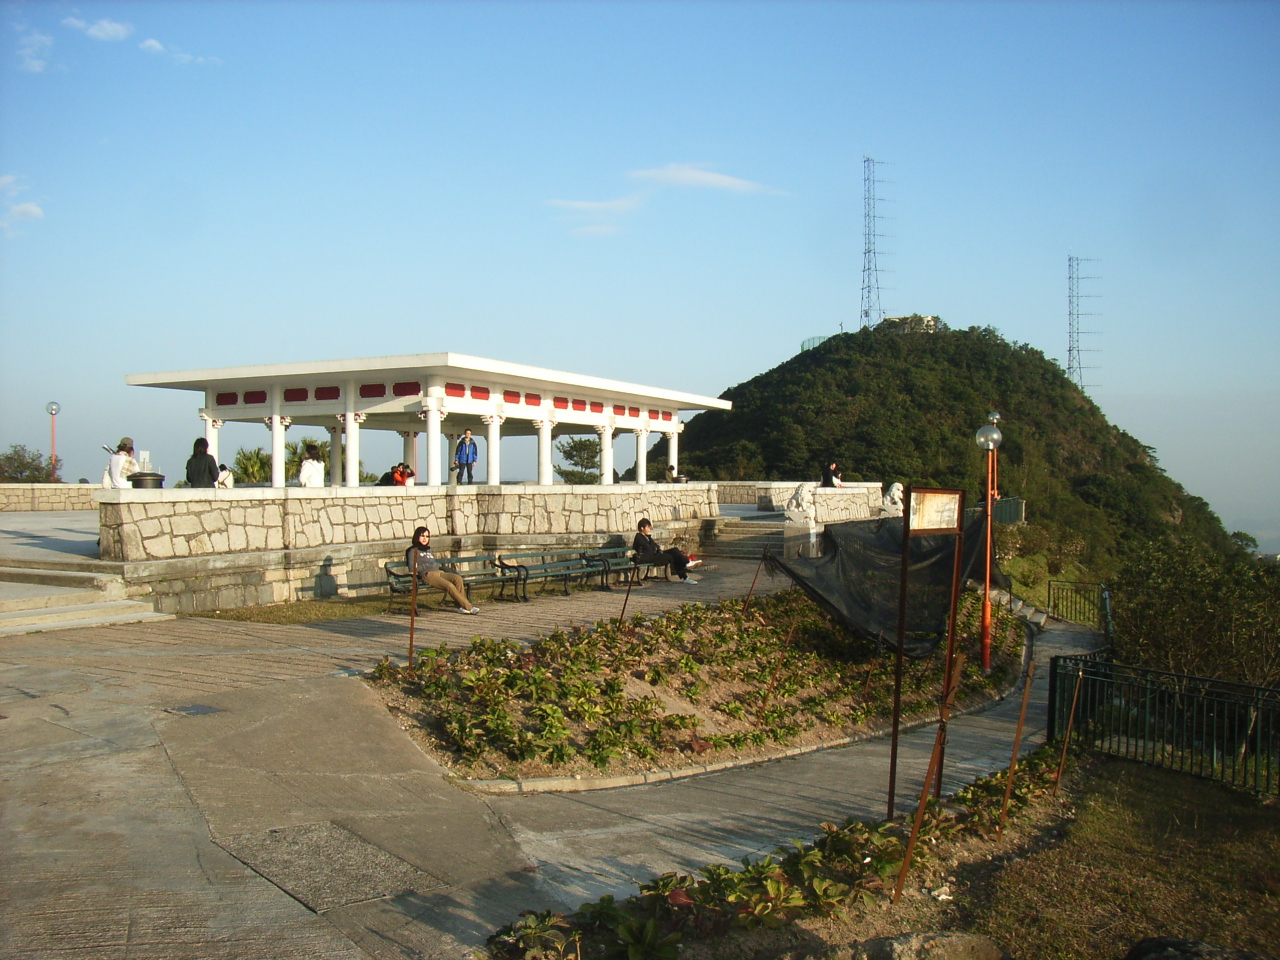 http://upload.wikimedia.org/wikipedia/commons/1/12/HK_Victoria_Peak_Garden_n_hill.JPG